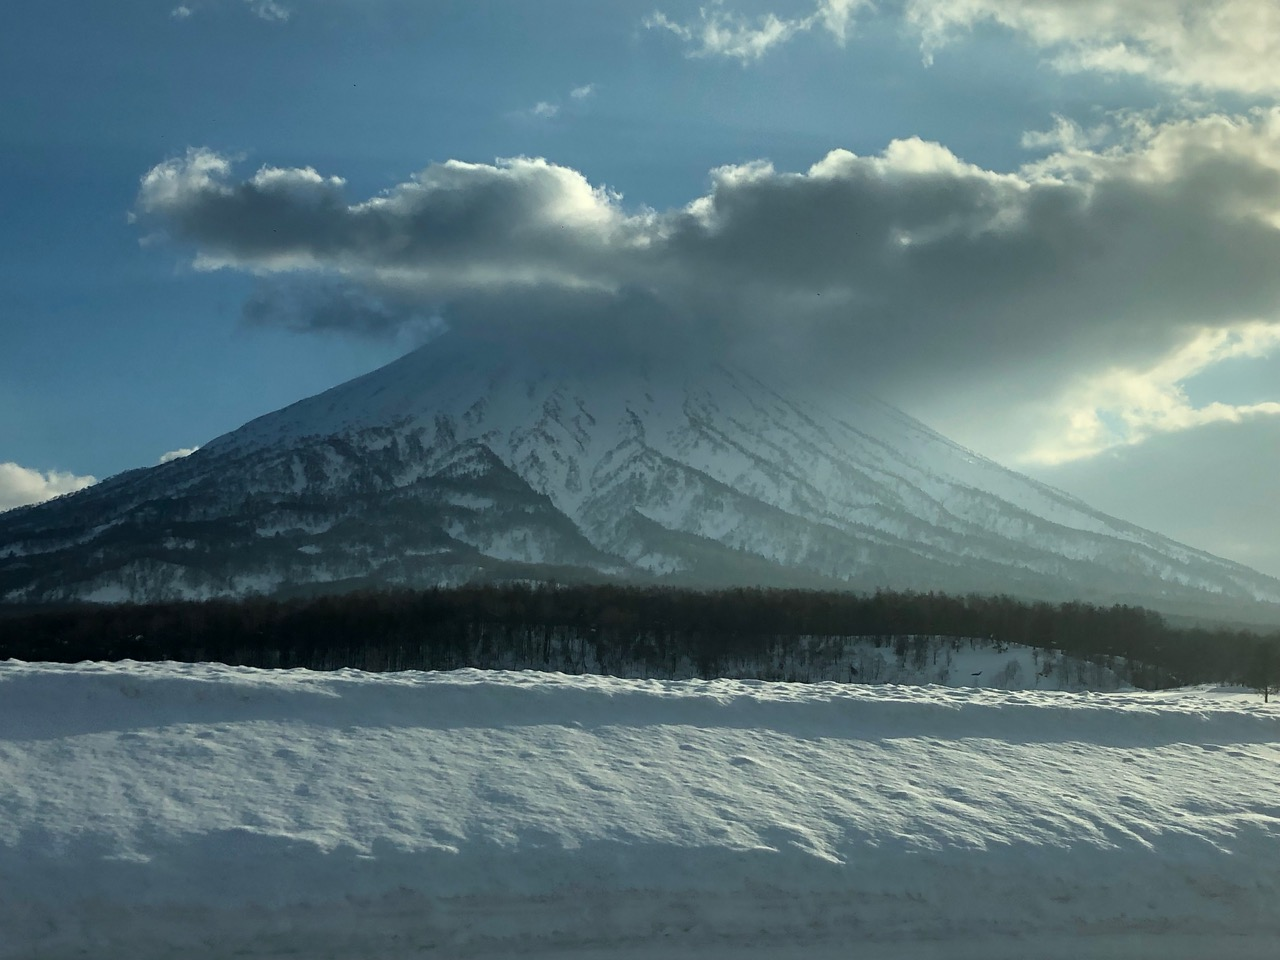 Mount Yotei in Niseko